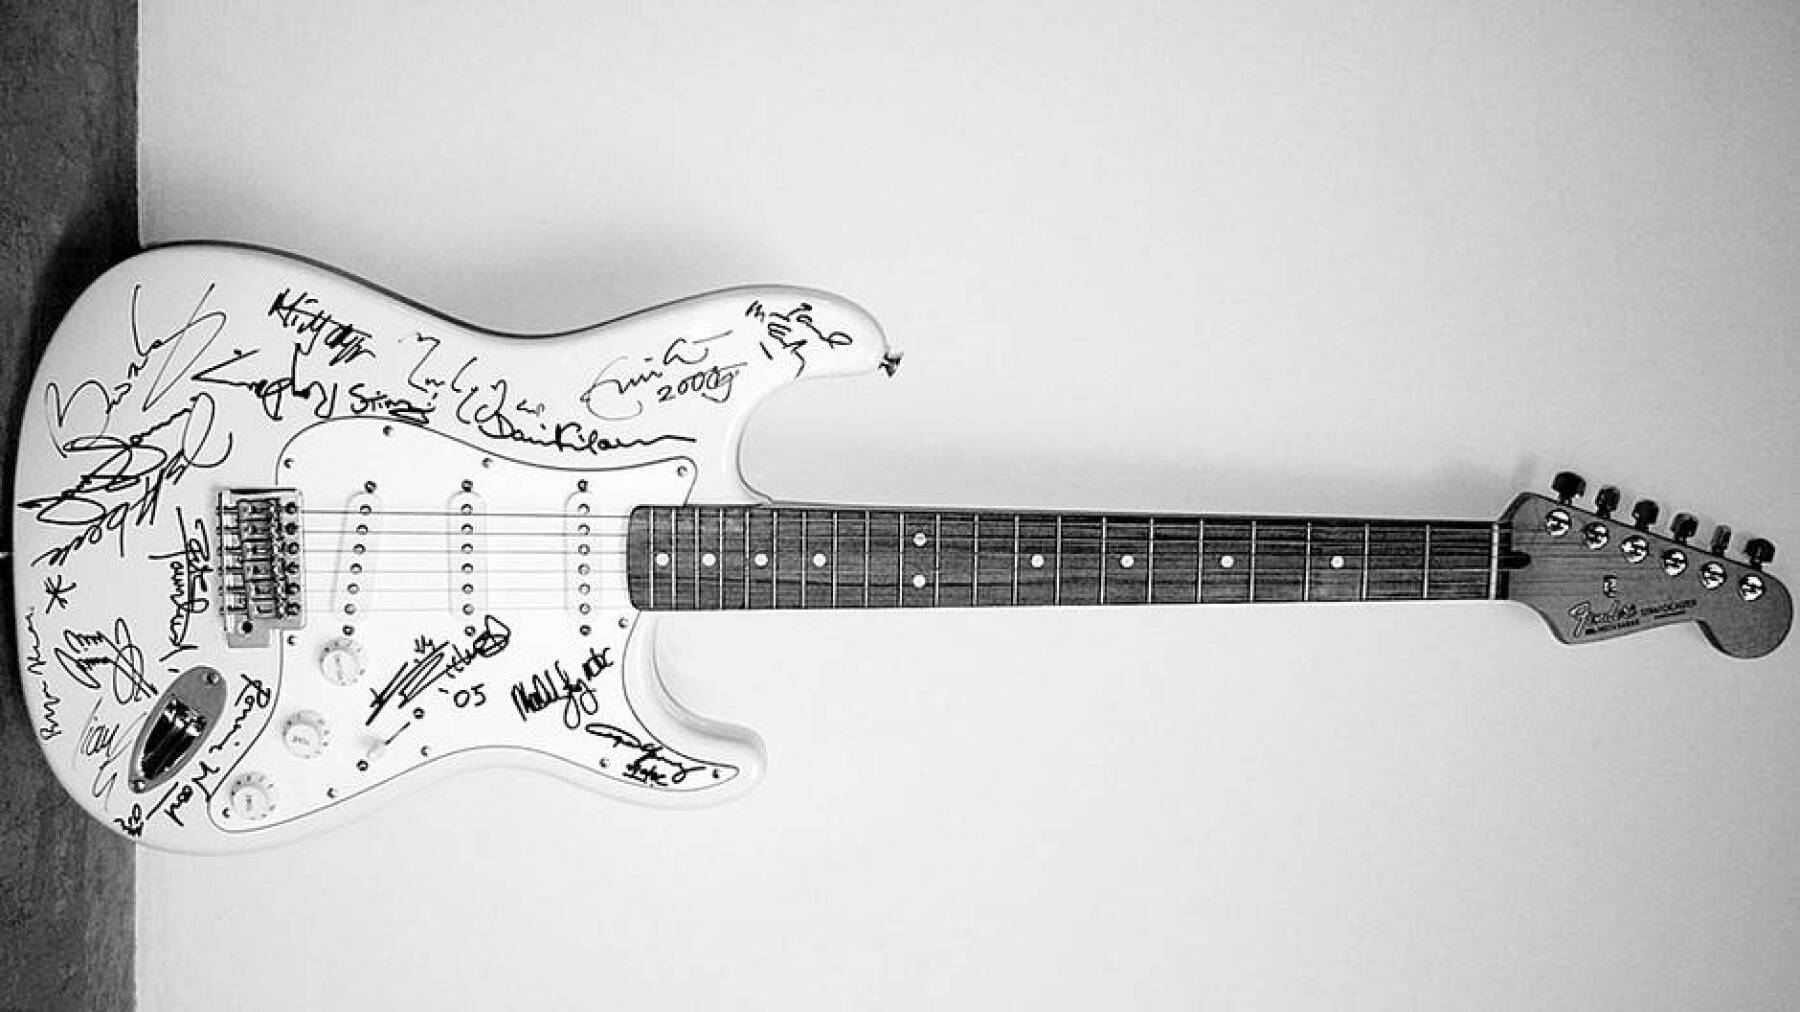 Reach Out to Asia Fender Stratocaster - 2,7 millones de dólares